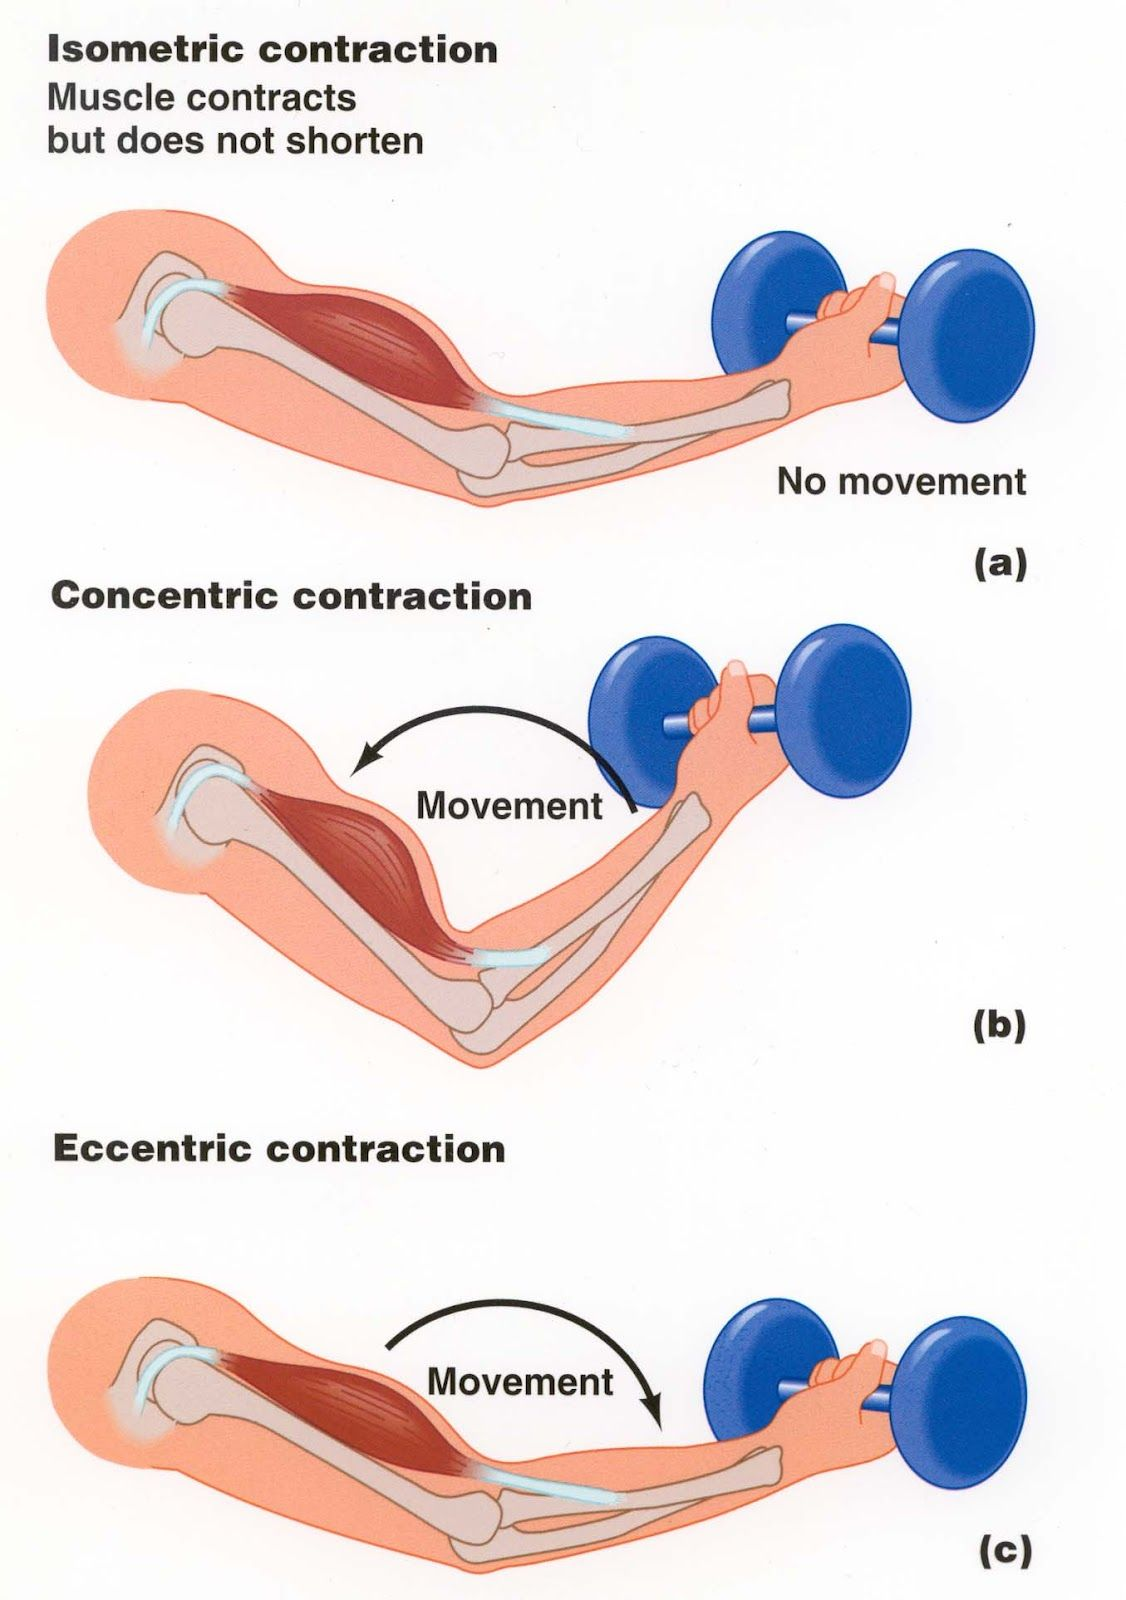 Types of muscle contraction (Isotonic, Isometric and